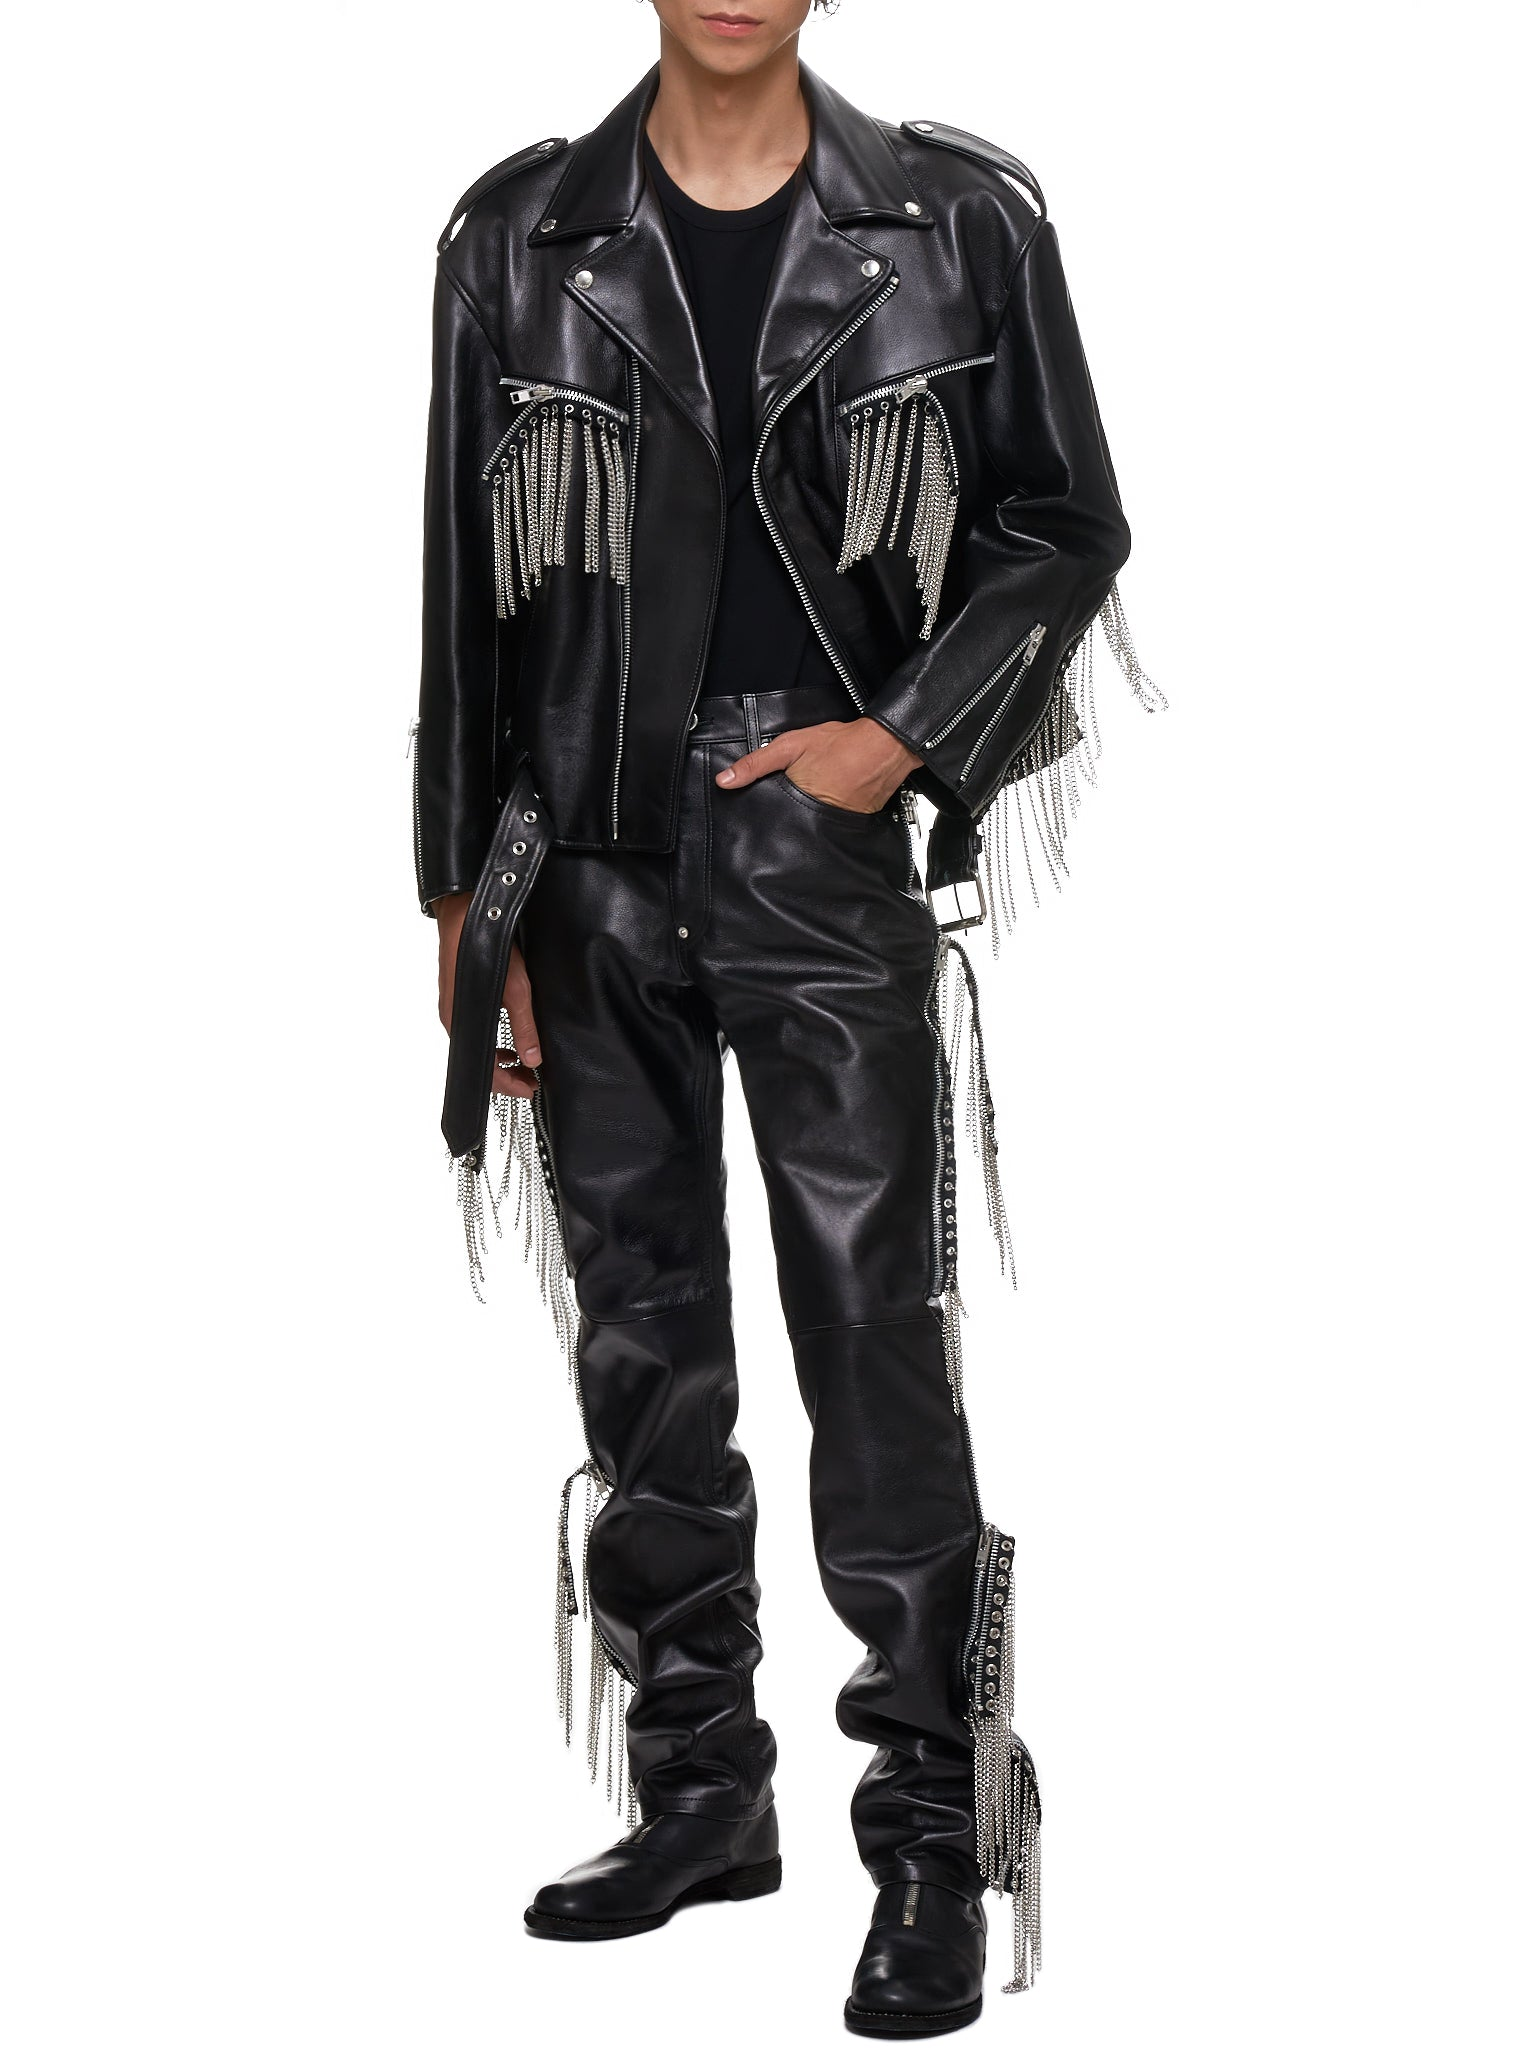 John Lawrence Sullivan Leather Pants - Hlorenzo Style